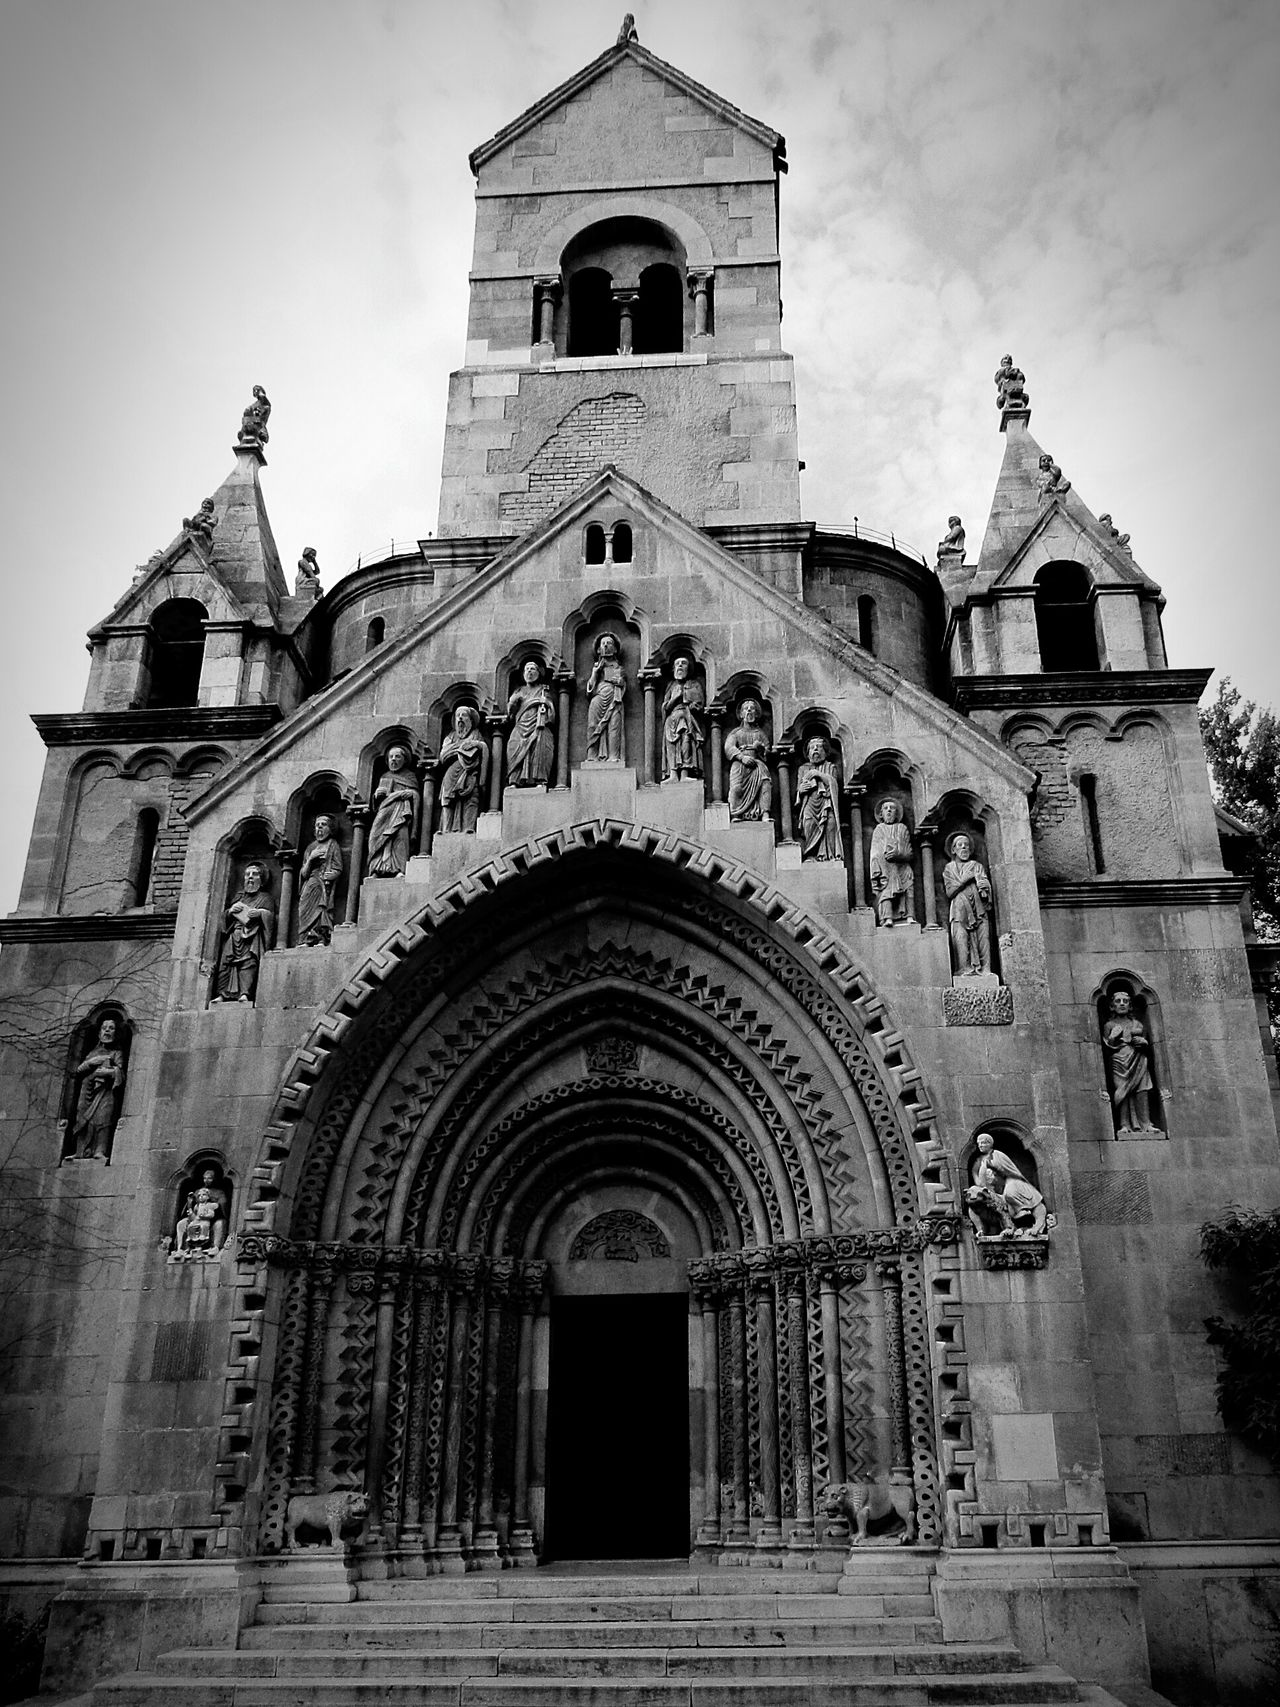 Temple Temple Architecture Templephotography Buildingphotography Architecure Blackandwhite Blackandwhitephotography Historical Building History Fear Of The Dark Amazingarchitecture Eyeemblack&white EyeEm Best Shots - Black + White Eyeemcollection Hungarian